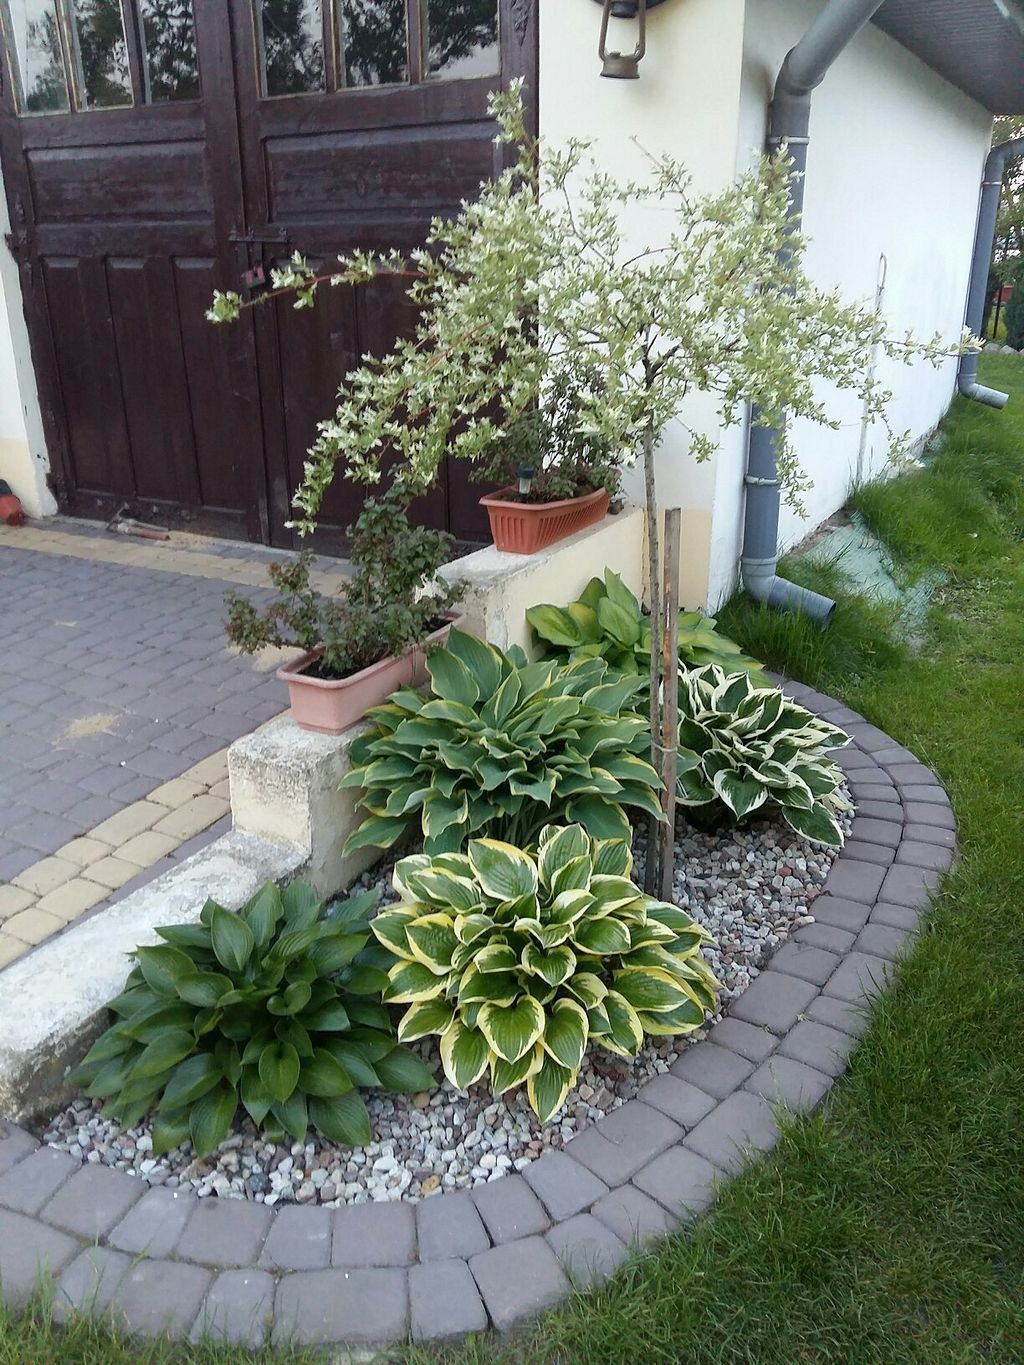 Sublime 21 Inspirational Gardening Ideas https://fancydecors.co/2017/12/29/21-inspirational-gardening-ideas/ To provide you with a concept of what things to search for, here's a comparison of balconies we've had most recently.